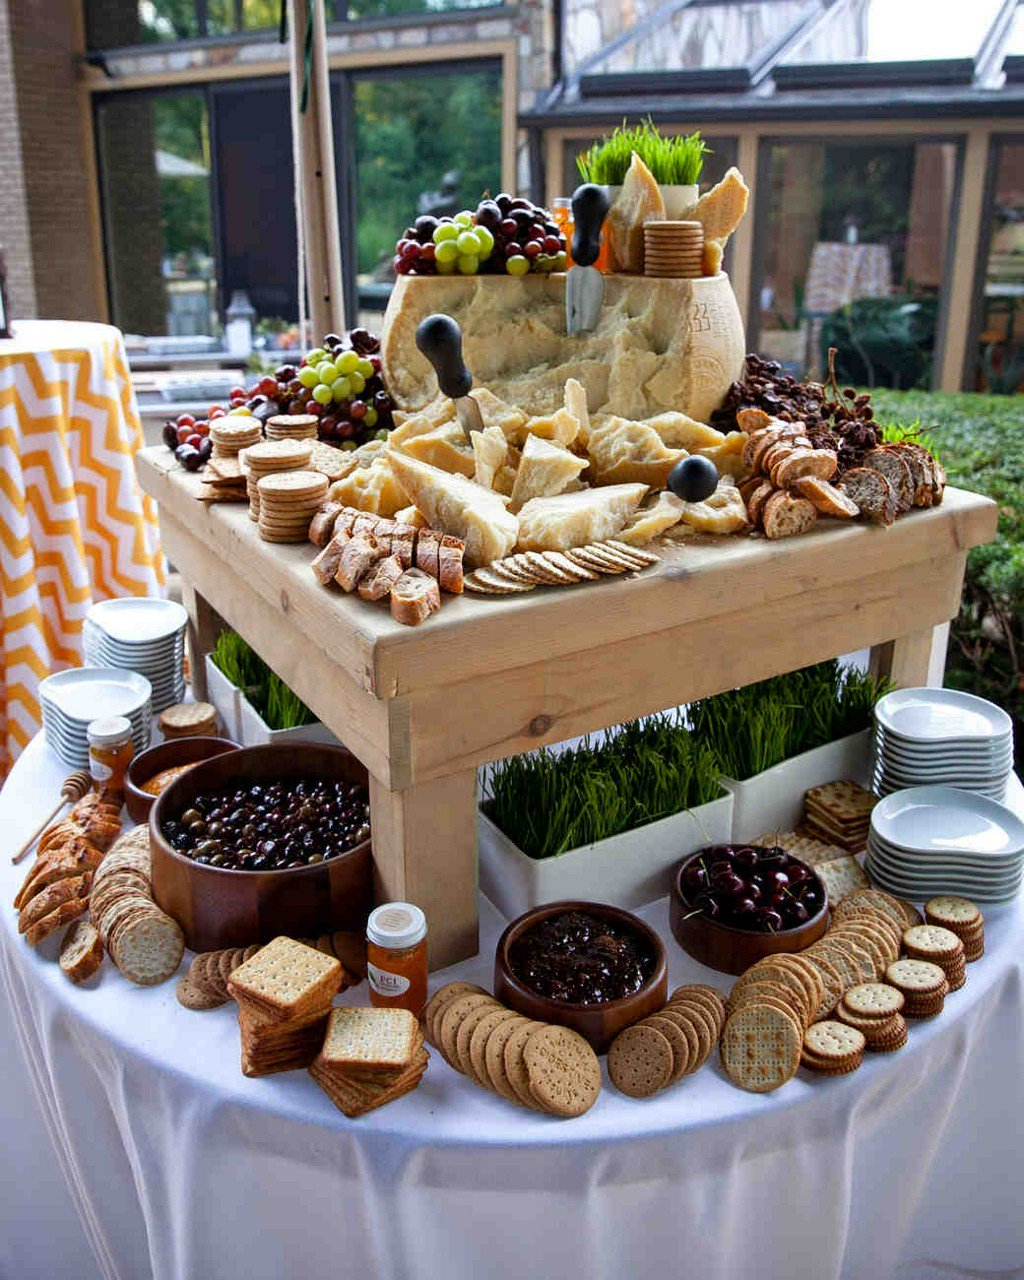 14 Delicious Food Bars for Your Wedding https://t.co/sHsVwzwsbM https://t.co/YCFa5vA51K